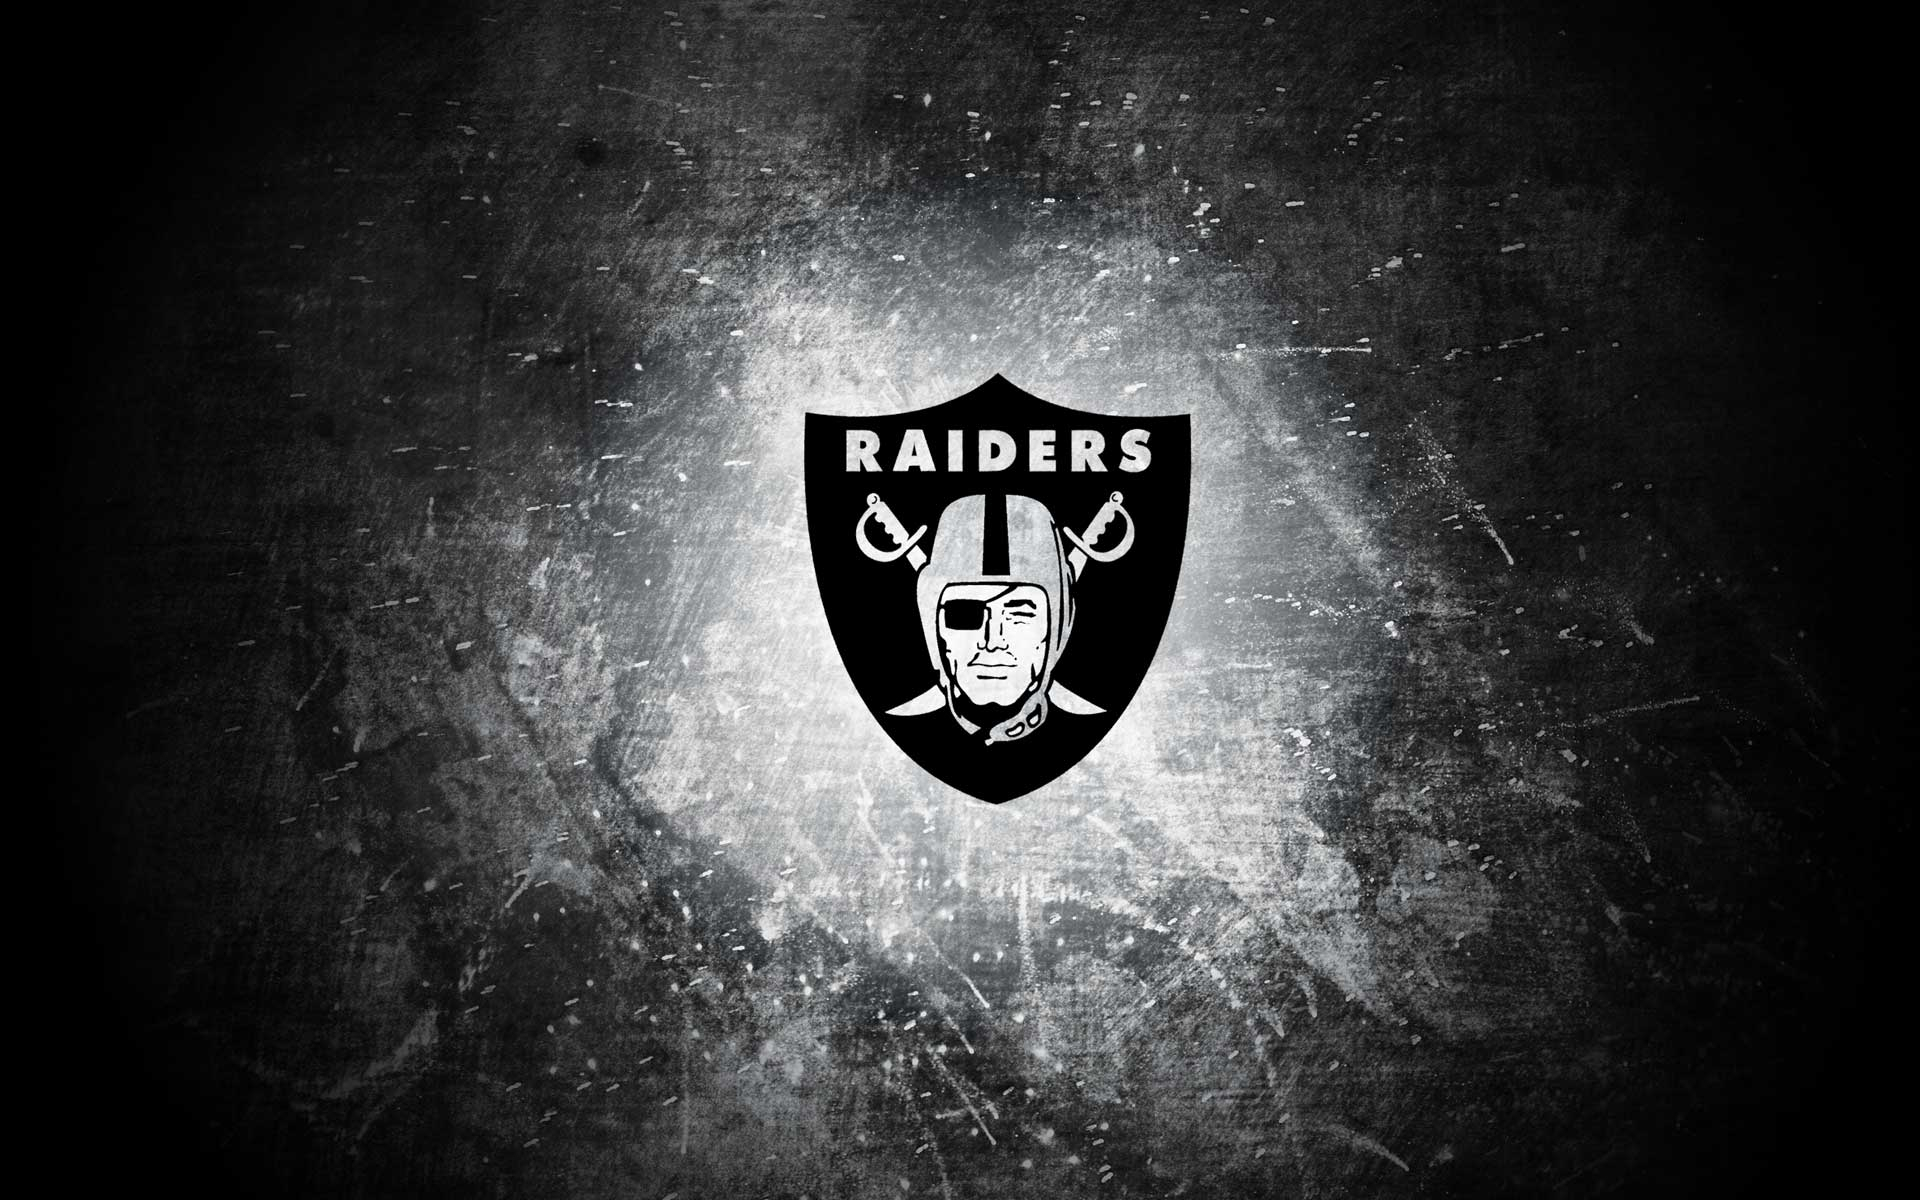 oakland raiders logo wallpapers - wallpaper cave